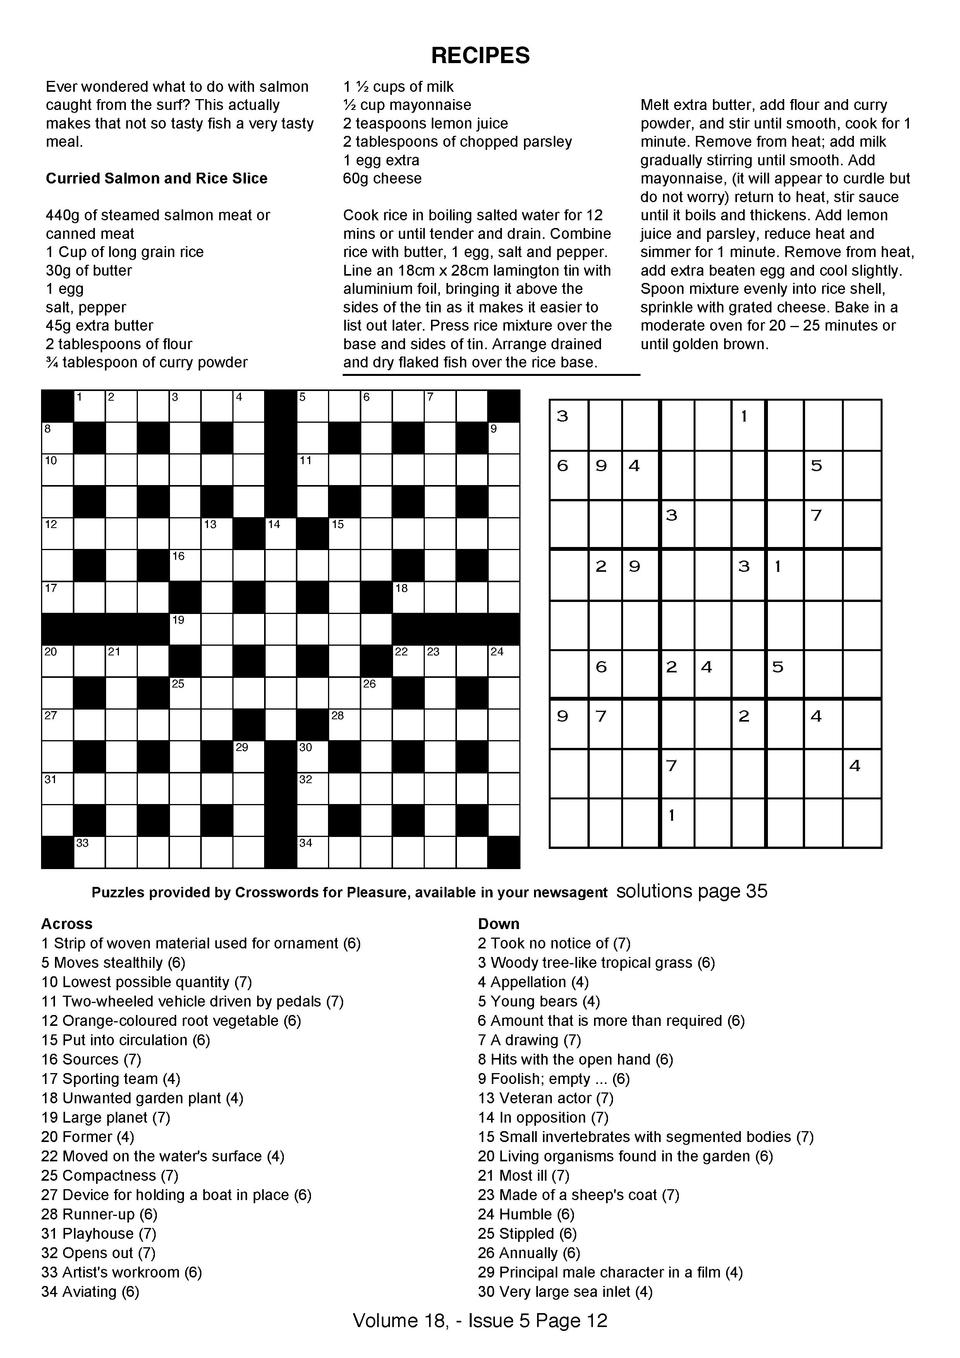 Showy ornament crossword 100 images miscellaneous for Japanese flower arranging crossword clue